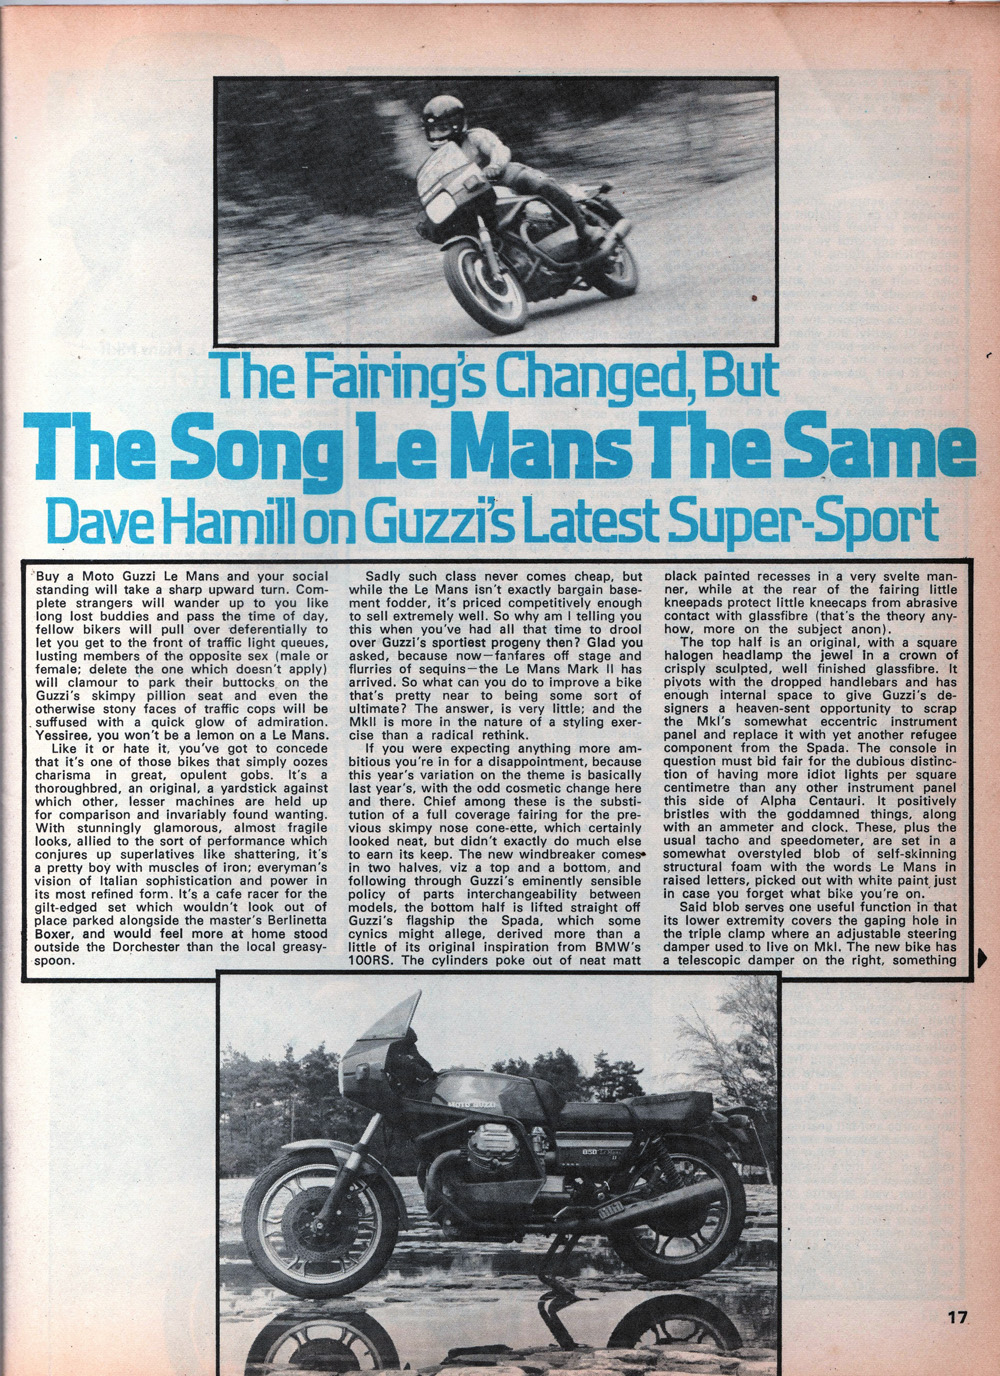 1979 Moto Guzzi 850 LeMans MkII road test 02.jpg